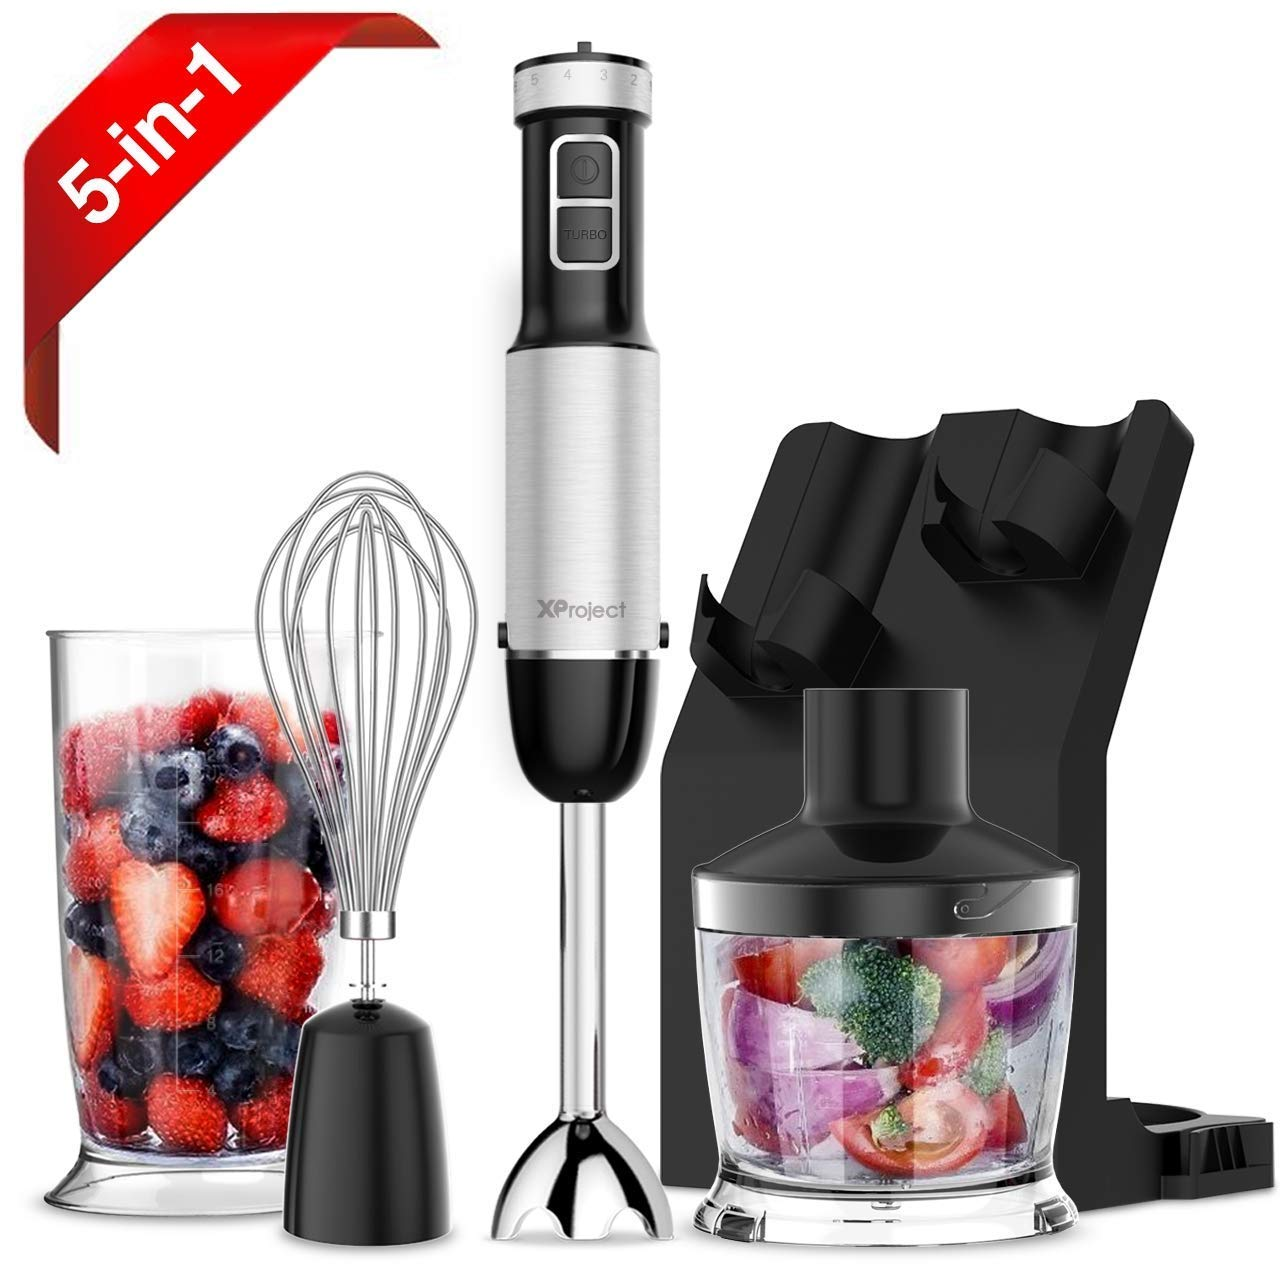 Black HB-2075 Powerful Immersion Blender with 6 Speed Control,500ml Chopper,Whisk,Beaker 700ML,Storage Stand for Kicthen XProject 800W 4-in-1 Hand